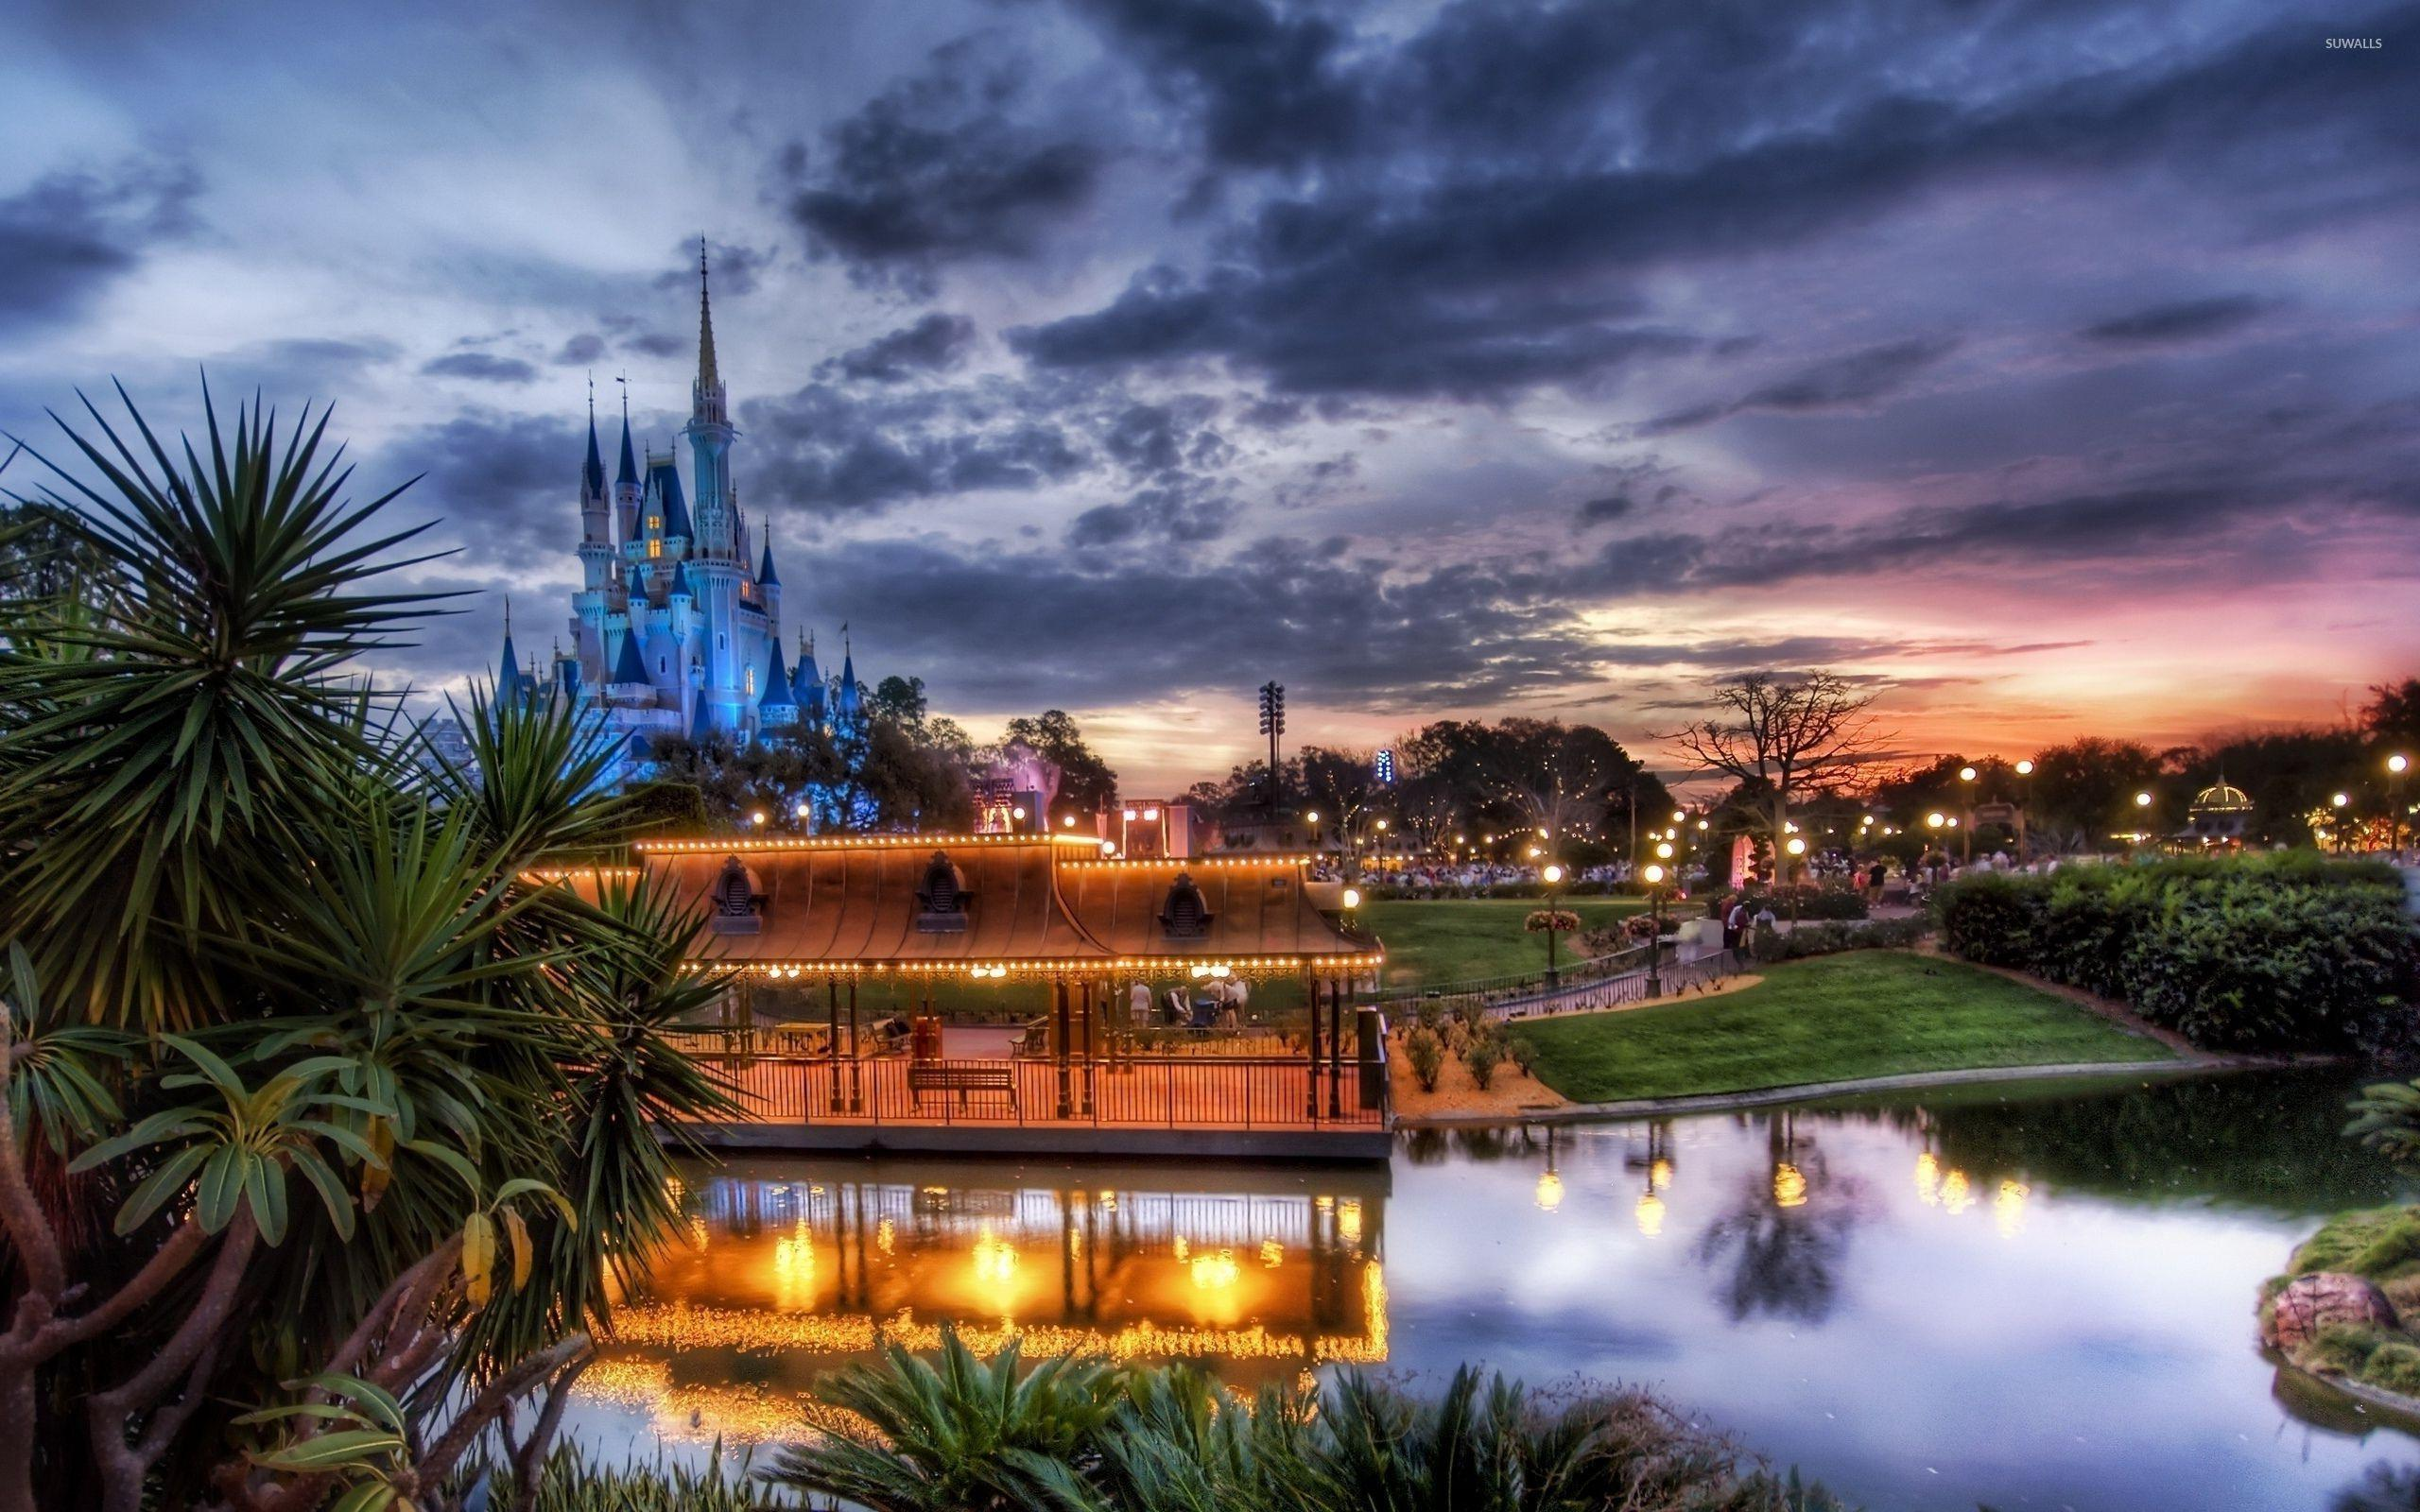 Walt Disney World Desktop Wallpaper 22260 - Baltana